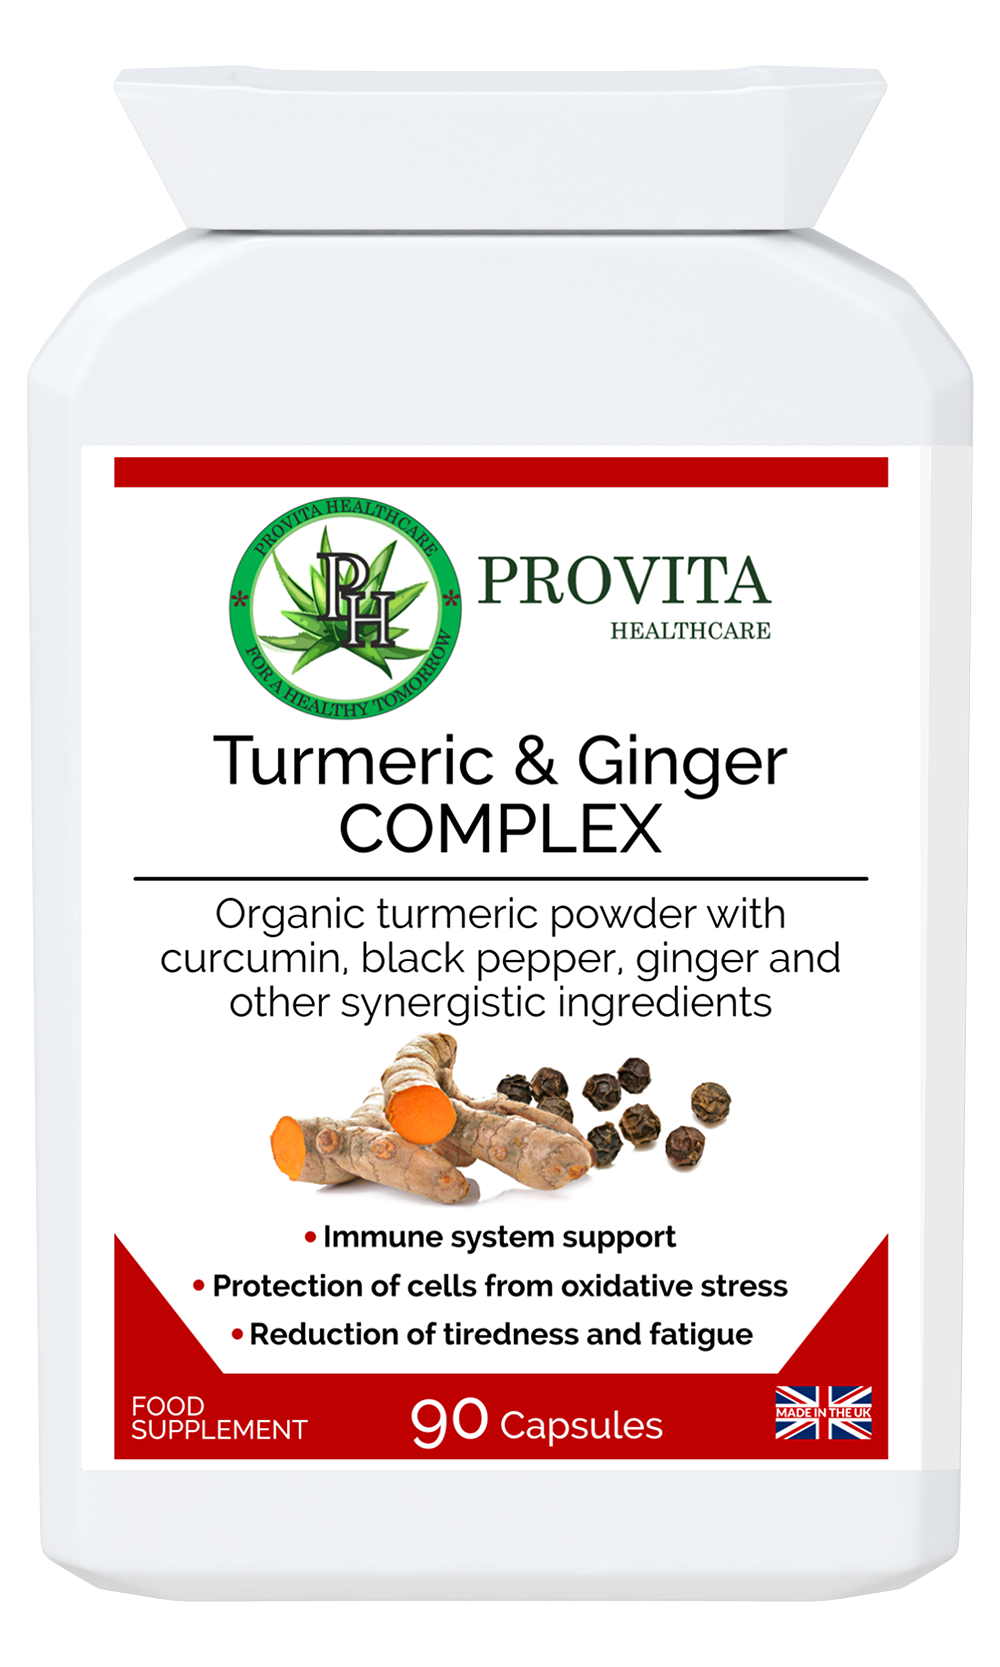 Turmeric & Ginger COMPLEX